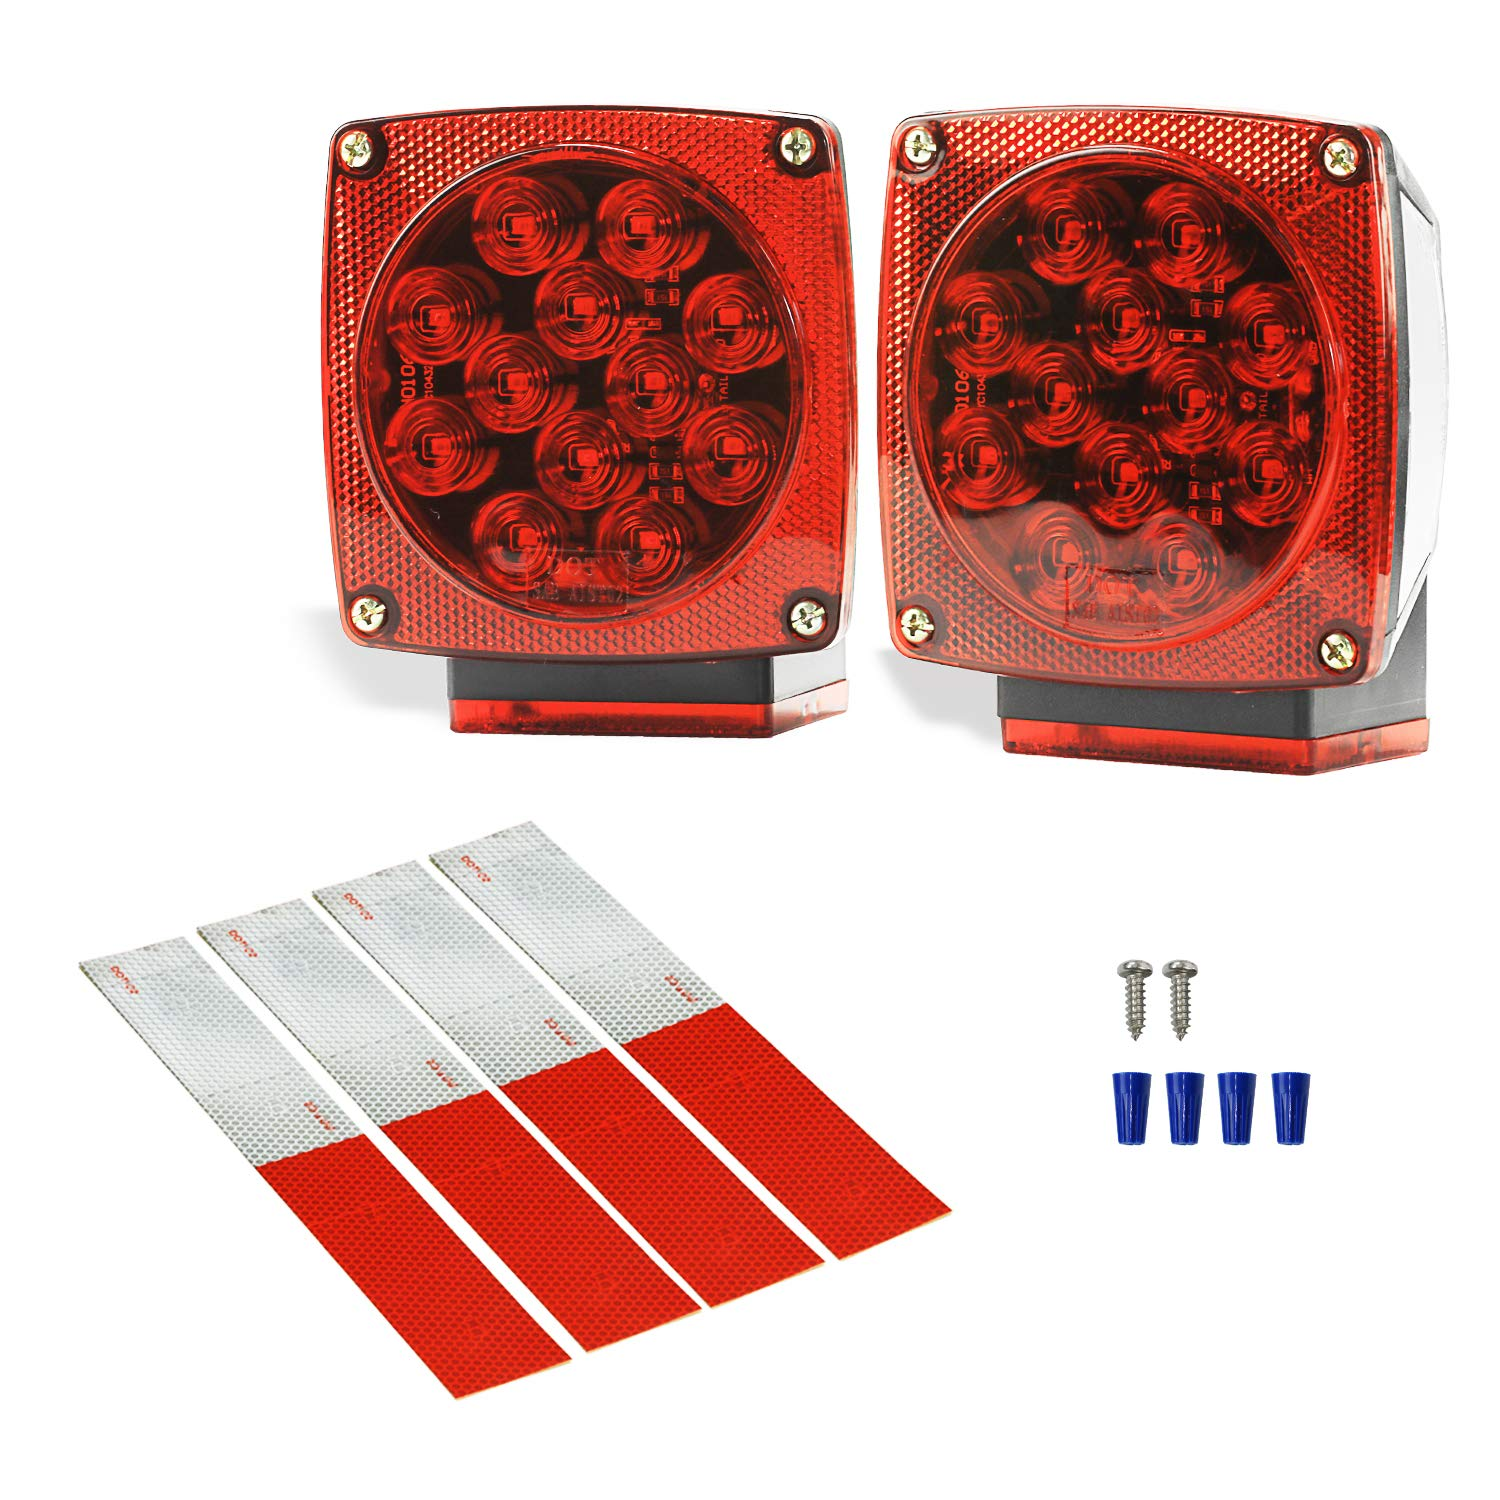 Wellmax 12V LED Submersible Trailer Lights, Left and Right Trailer Lights for Stop, Turn, and Signal Lights, for Under 80 Inch Boat Trailers, Truck, and RV by Wellmax